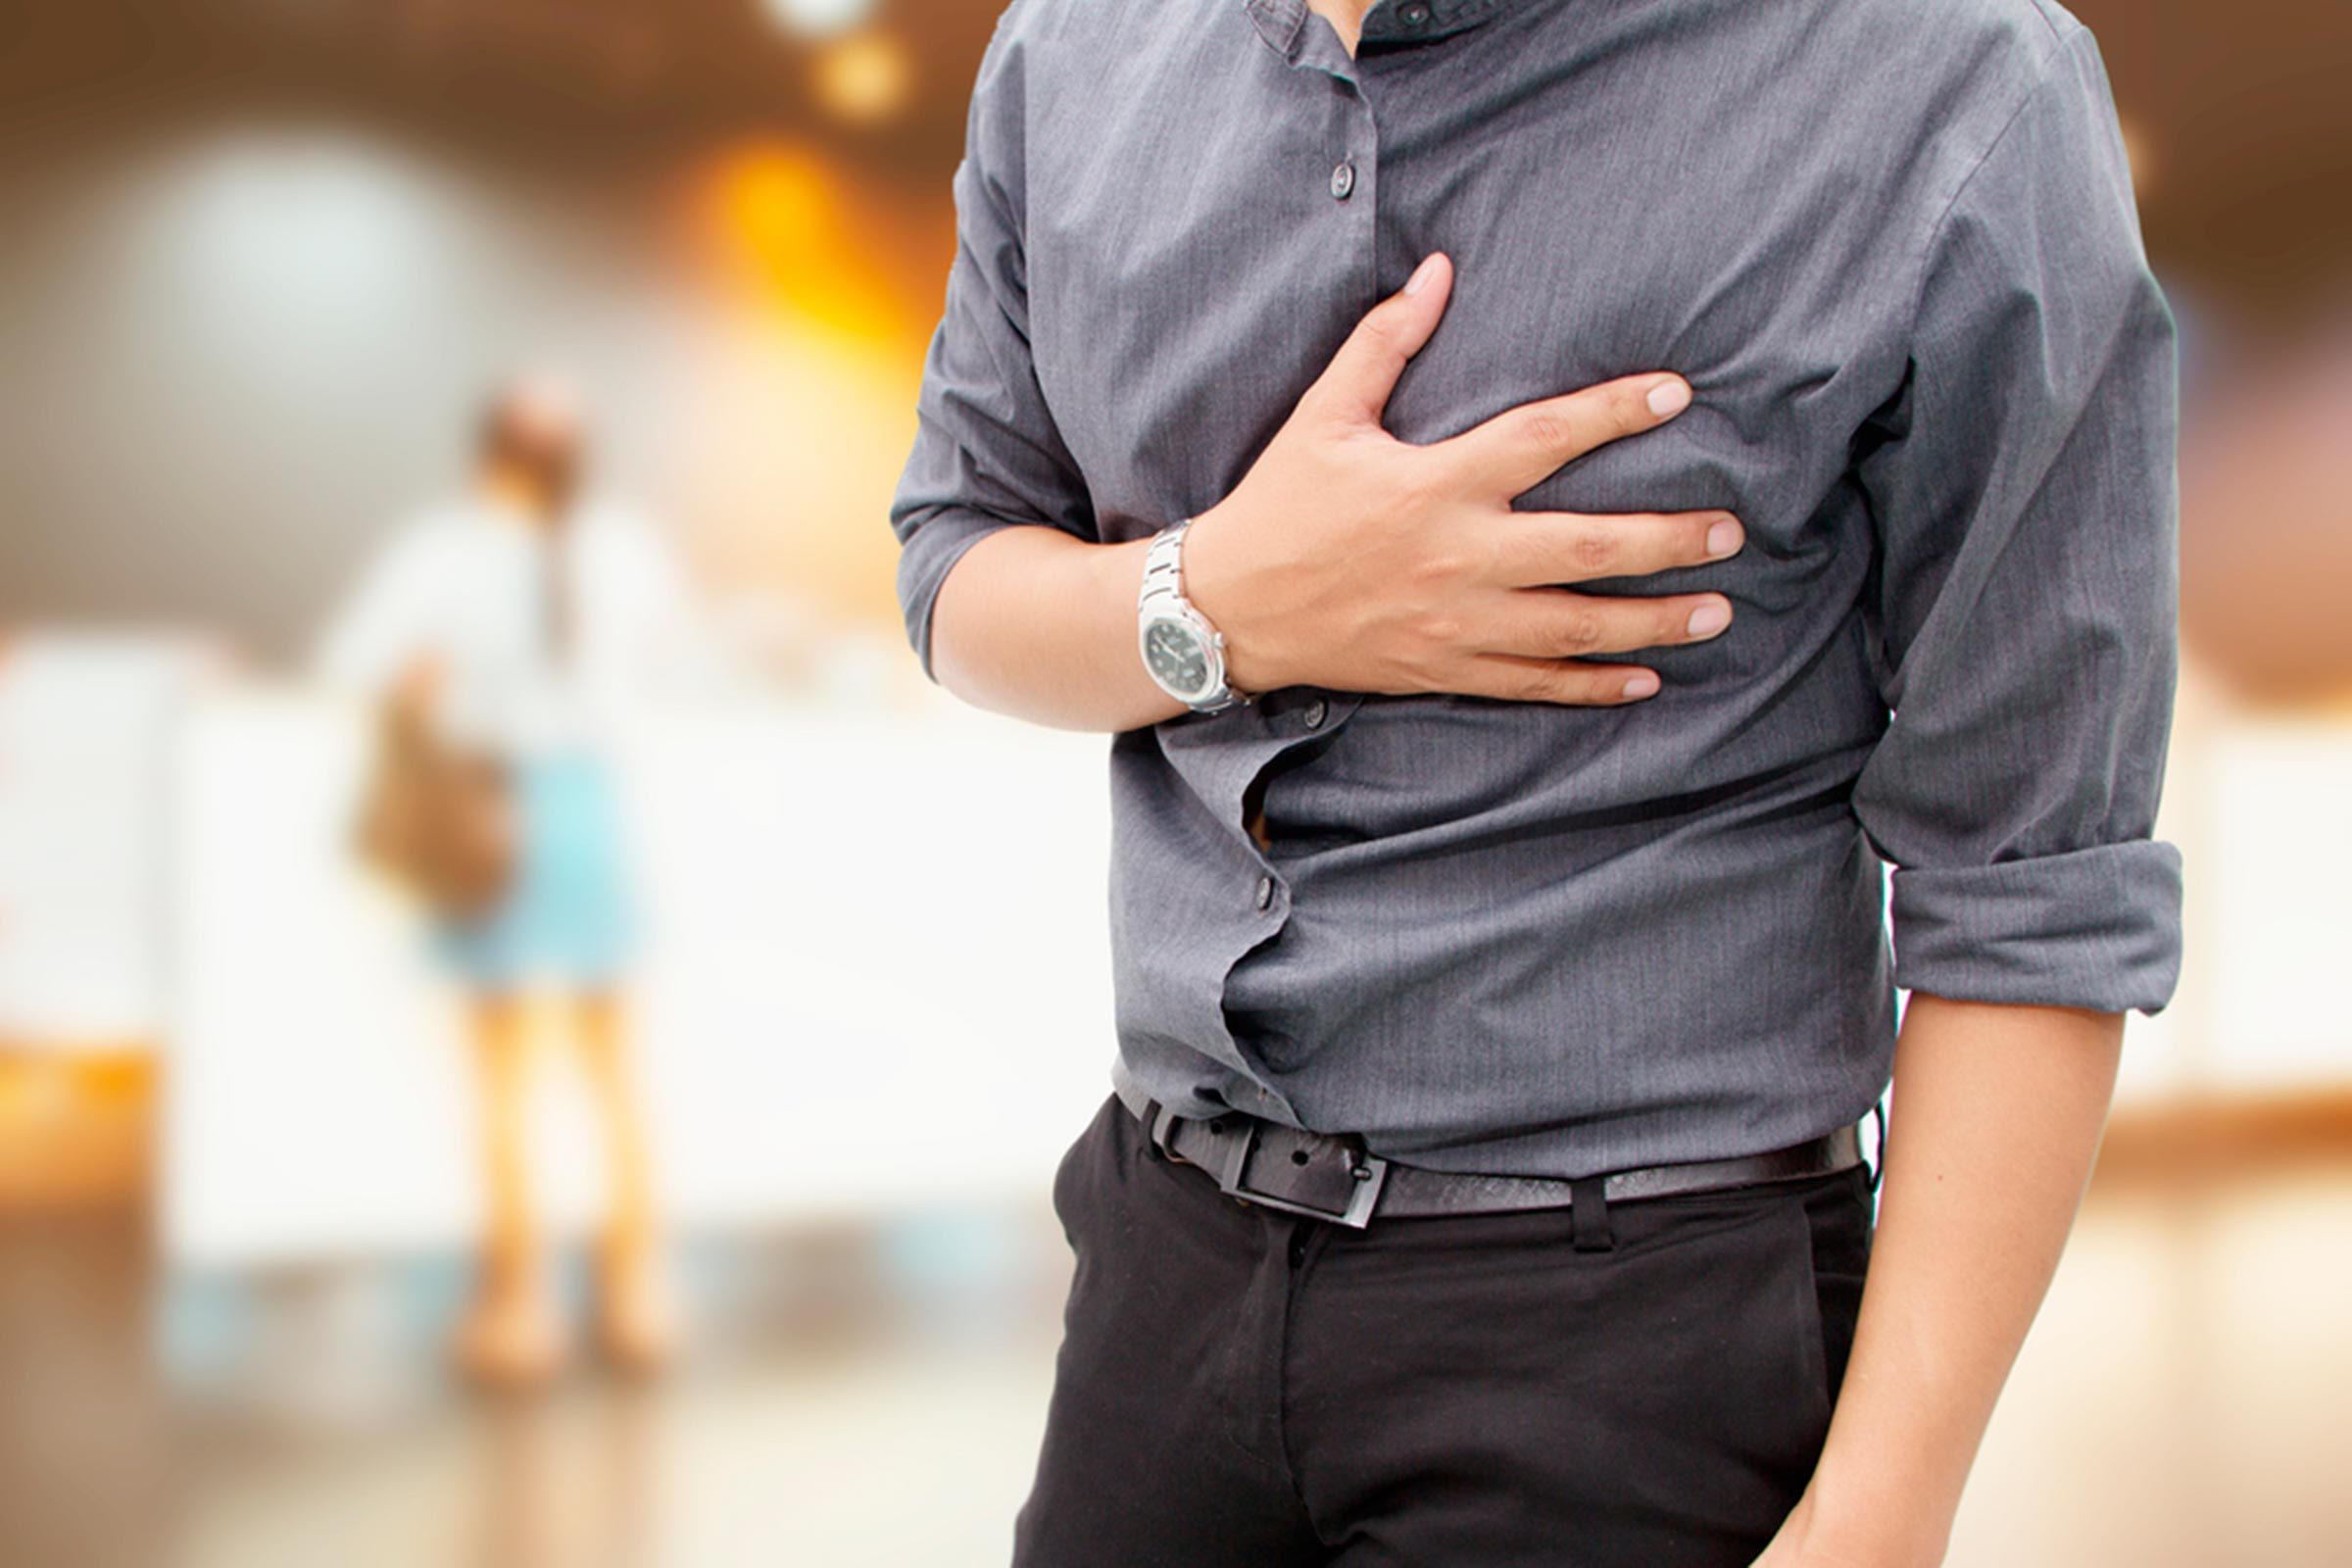 Chest Pain and Heart Palpitations - The Fake Heart Attack